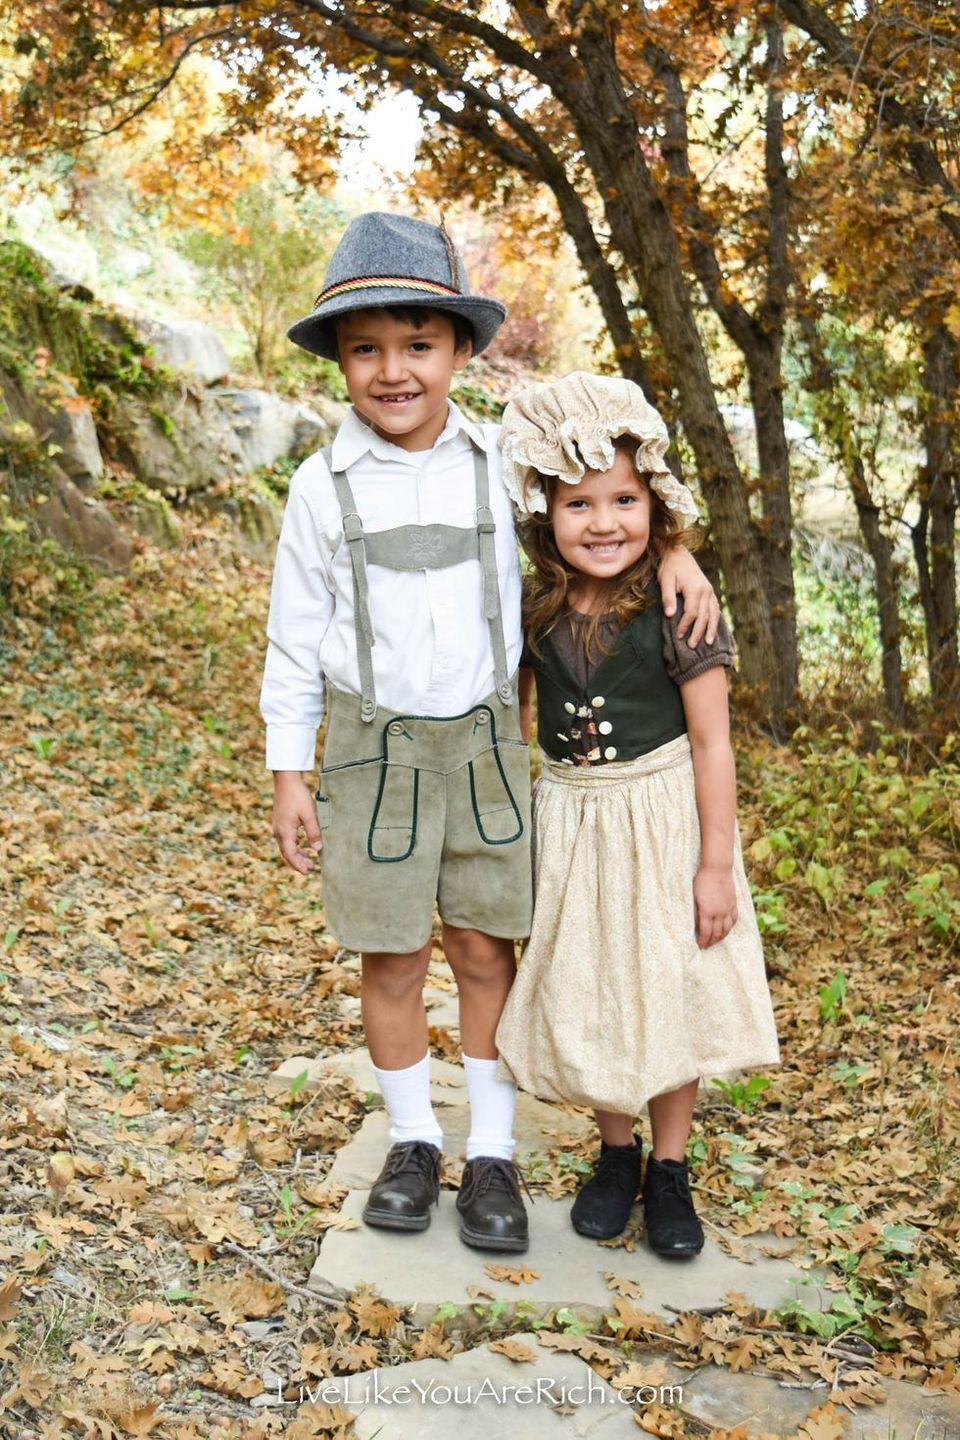 """<p>Hansel and Gretel's eventual fate in <em>Grimm's Fairy Tales </em>is, well, a little bleak. But you can remind your kids of the happier parts of the story by dressing them up in these sweet, old-fashioned outfits.</p><p><strong>Get the tutorial at <a href=""""https://livelikeyouarerich.com/hansel-and-gretel-costumes-grimms-fairytales/"""" rel=""""nofollow noopener"""" target=""""_blank"""" data-ylk=""""slk:Live Like You Are Rich"""" class=""""link rapid-noclick-resp"""">Live Like You Are Rich</a>.</strong></p><p><a class=""""link rapid-noclick-resp"""" href=""""https://go.redirectingat.com?id=74968X1596630&url=https%3A%2F%2Fwww.walmart.com%2Fsearch%2F%3Fquery%3Dbonnets&sref=https%3A%2F%2Fwww.thepioneerwoman.com%2Fholidays-celebrations%2Fg37014285%2Fbook-character-costumes%2F"""" rel=""""nofollow noopener"""" target=""""_blank"""" data-ylk=""""slk:SHOP BONNETS"""">SHOP BONNETS</a></p>"""